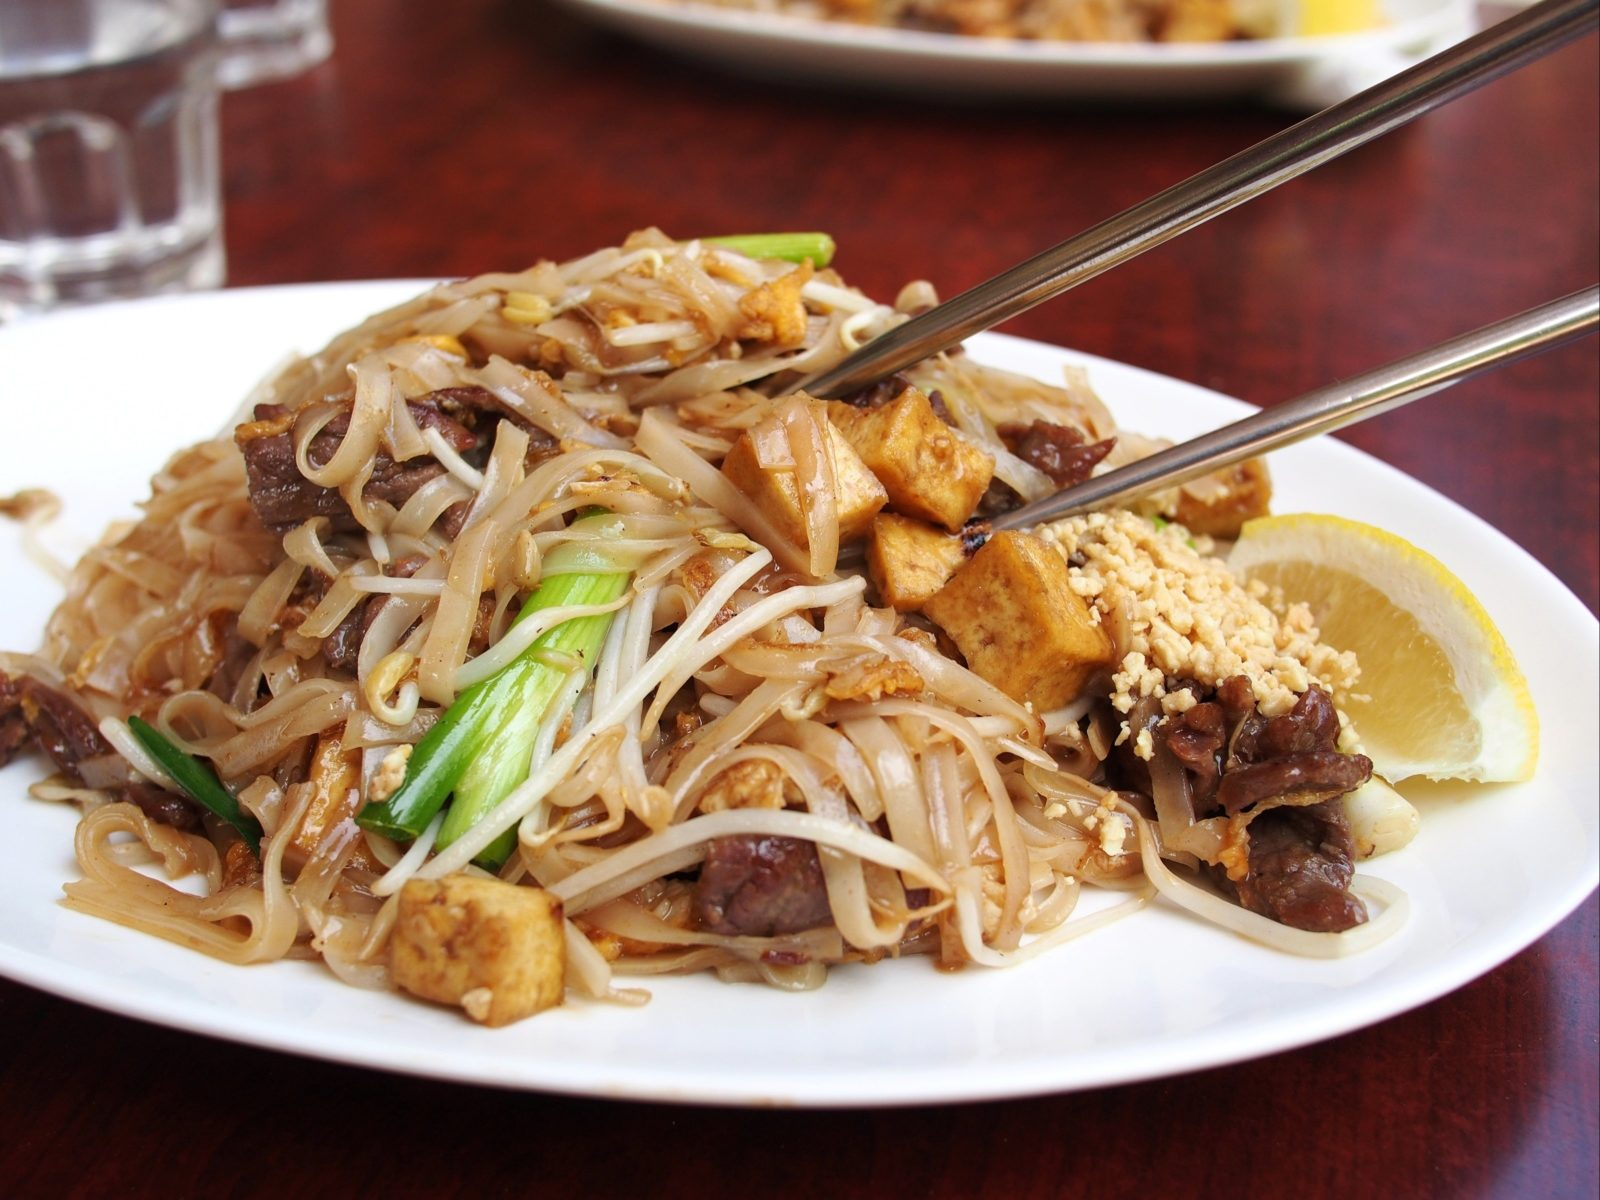 Image of Thai food on a white plate